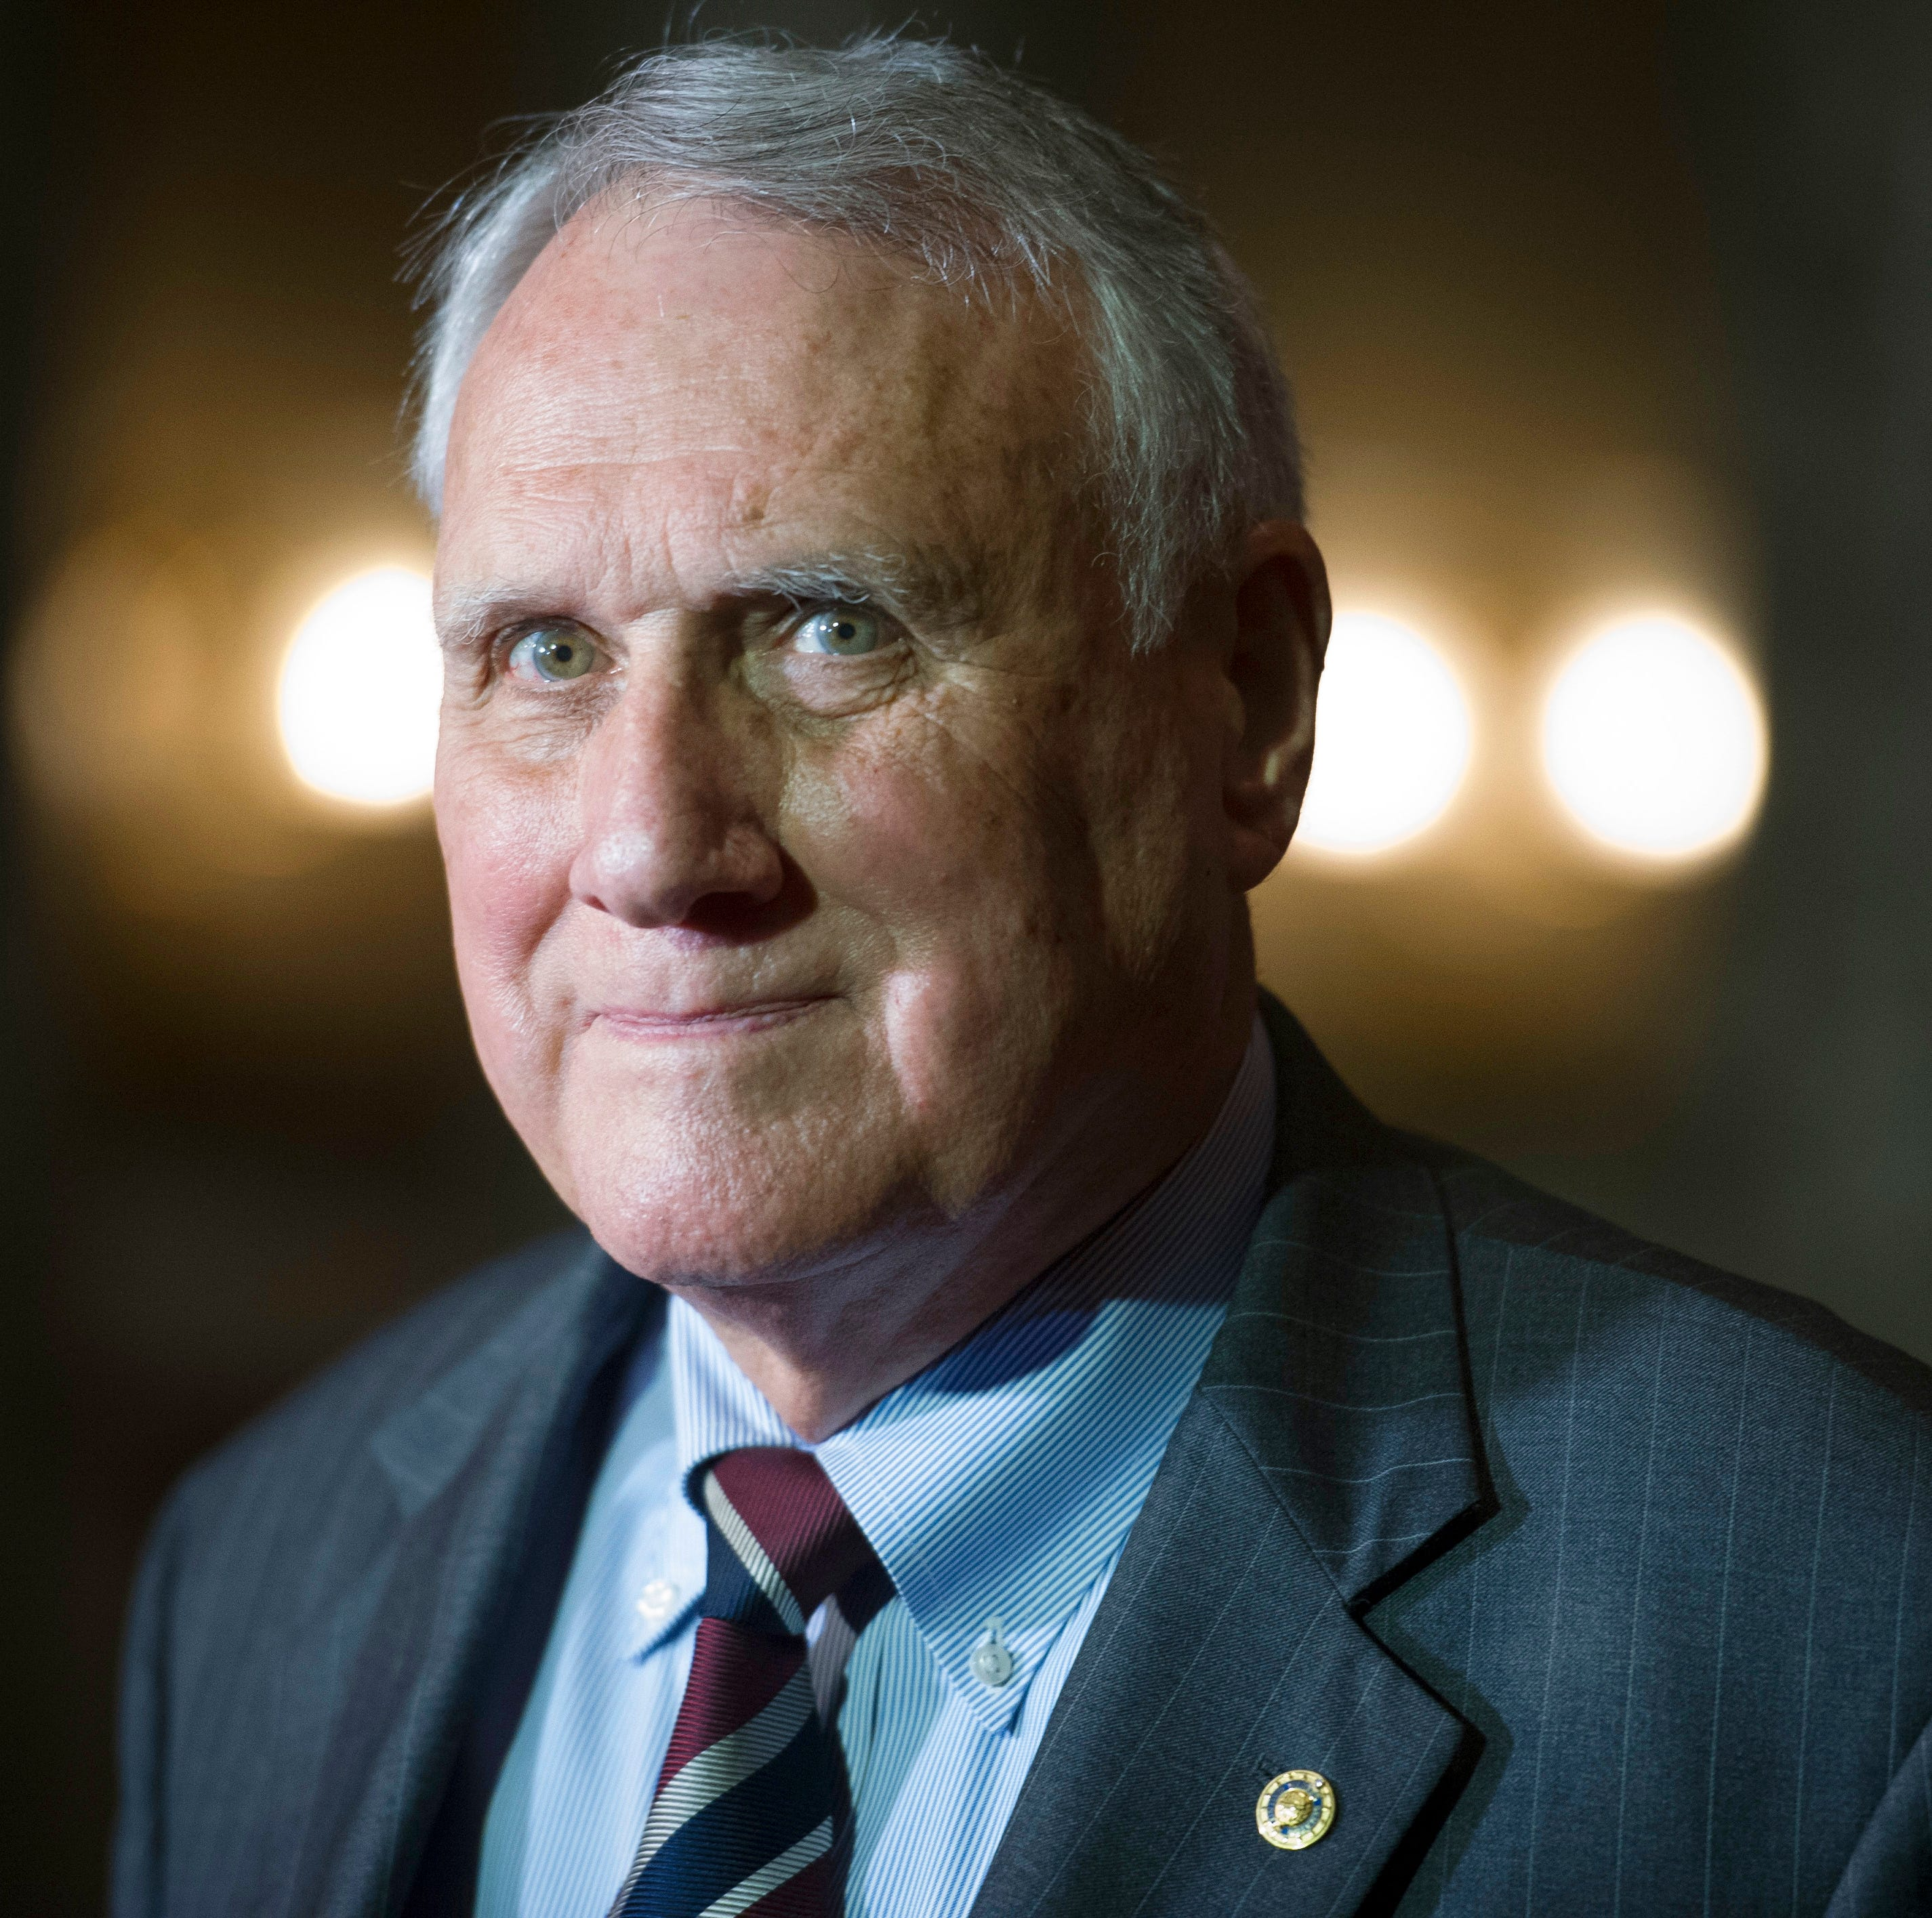 Jon Kyl will resign from the U.S. Senate on Dec. 31, setting up another appointment by Ducey to John McCain's seat